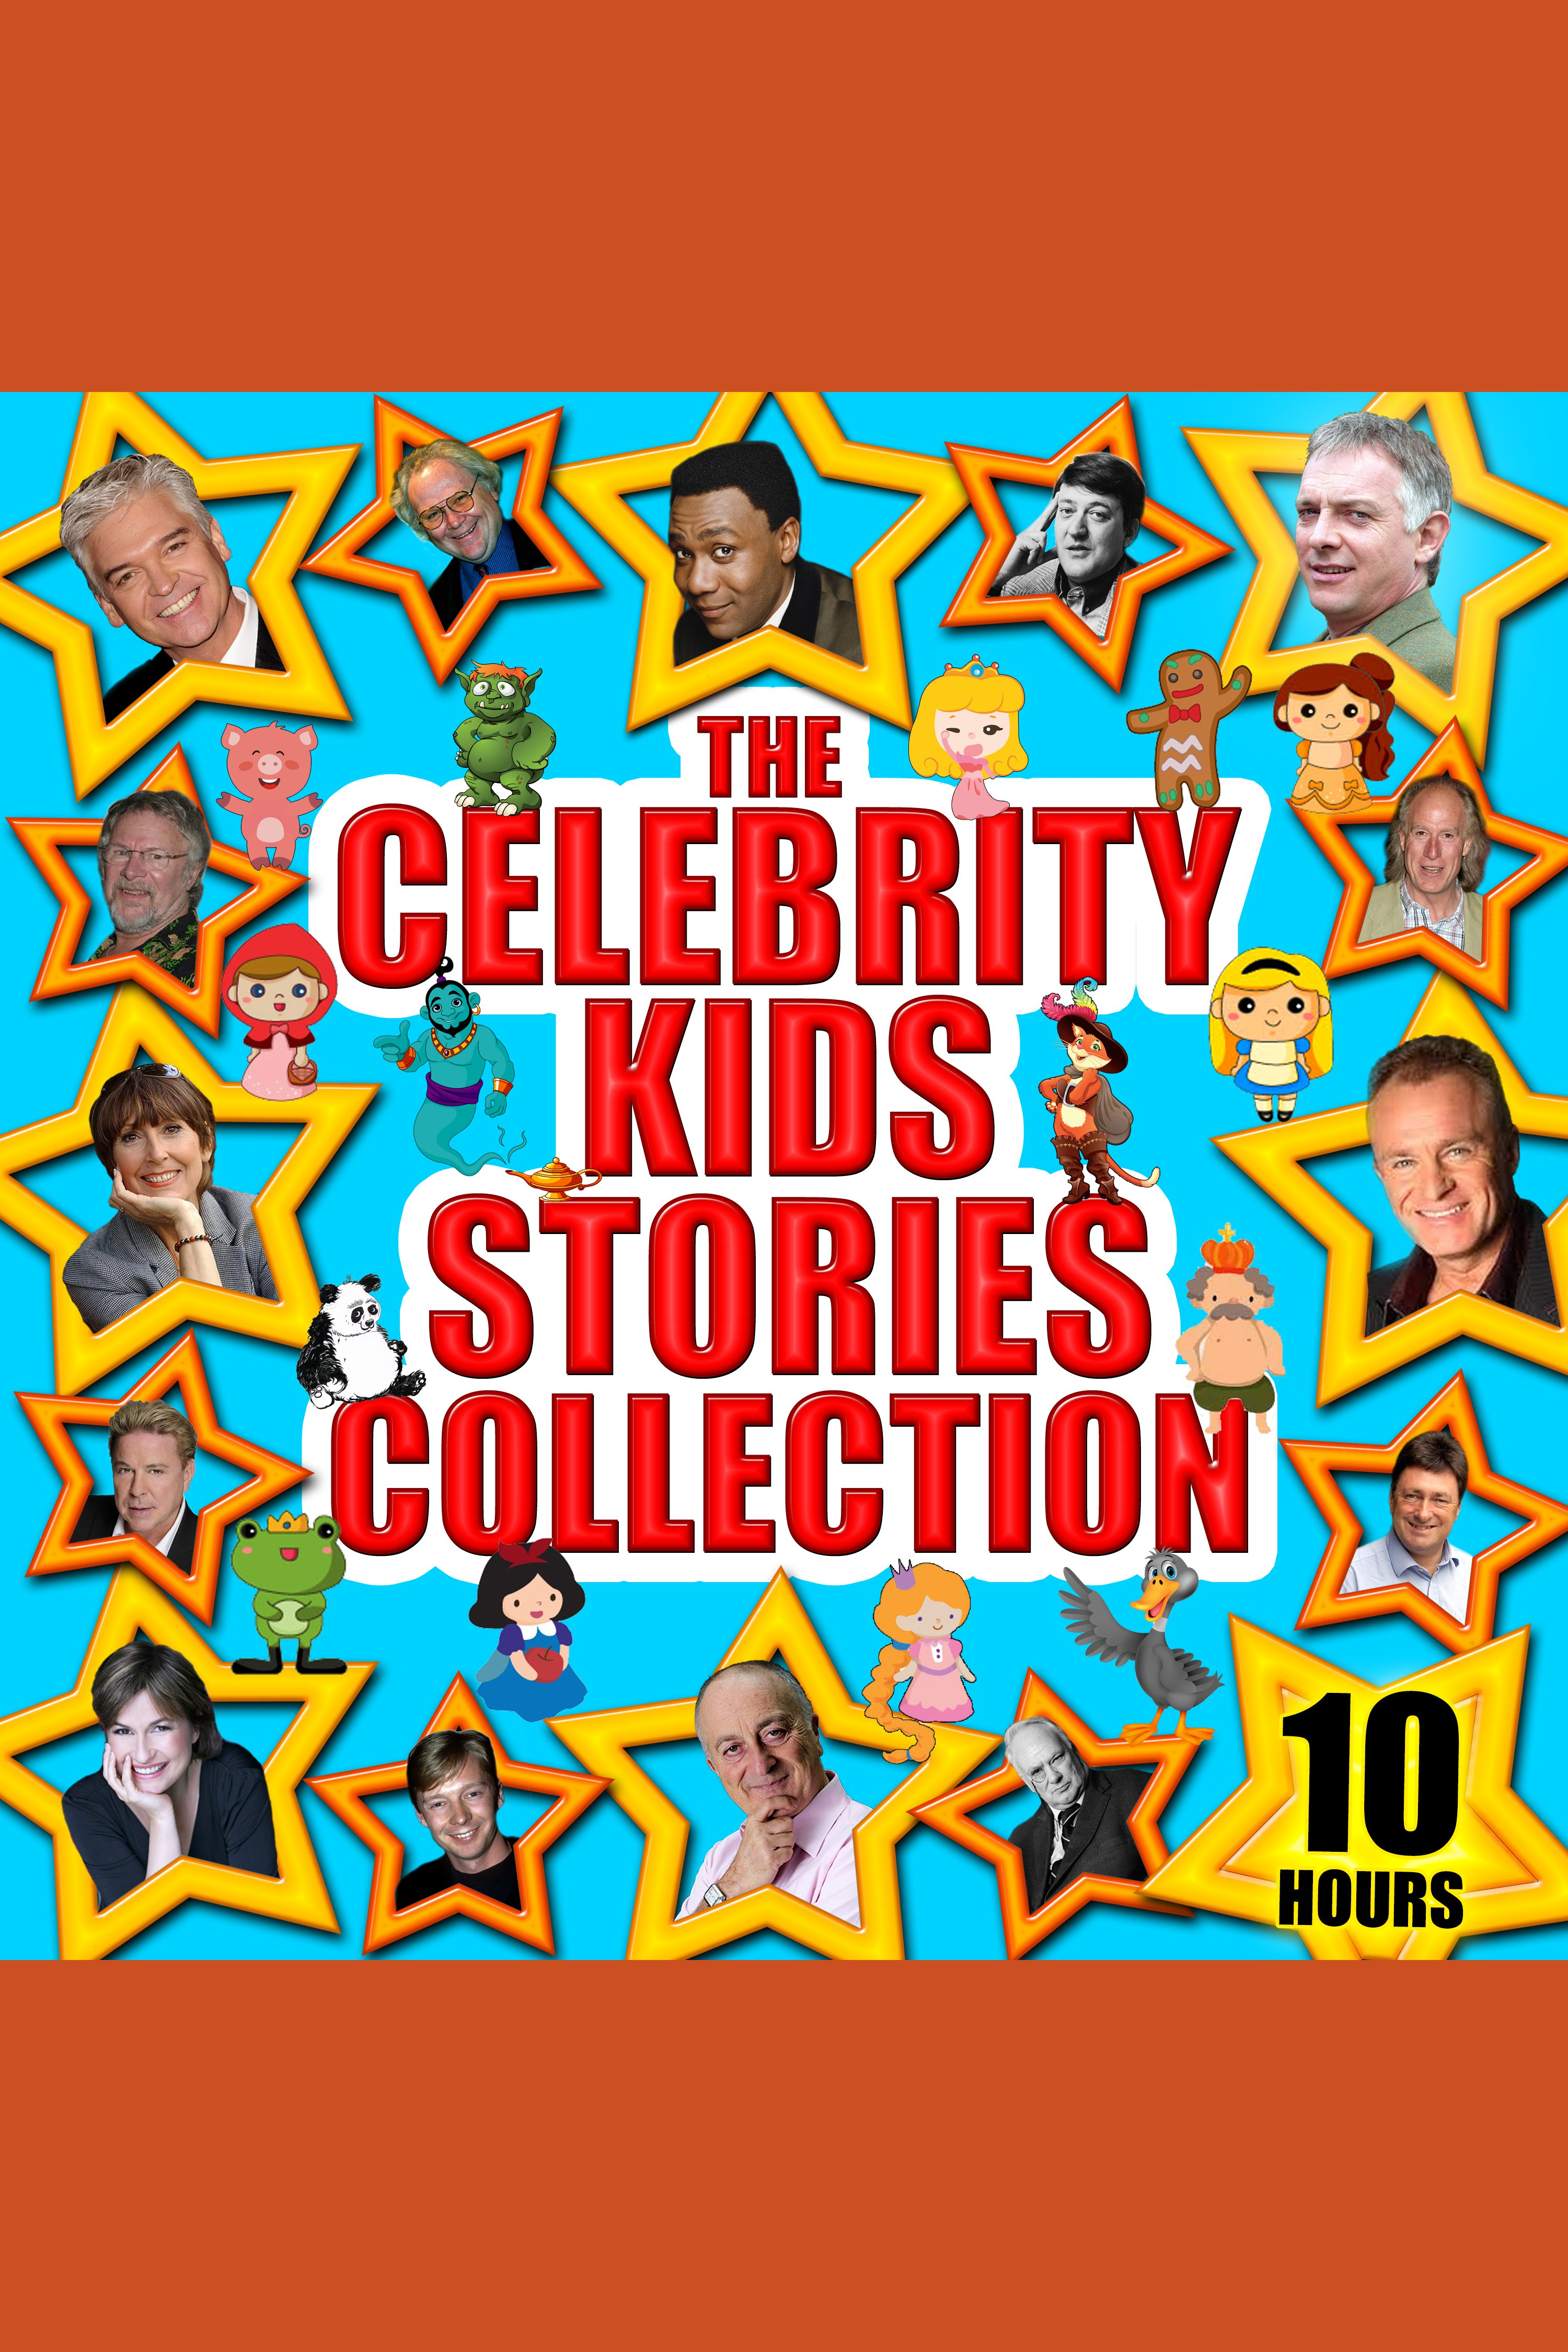 The Celebrity Kids Stories Collection cover image